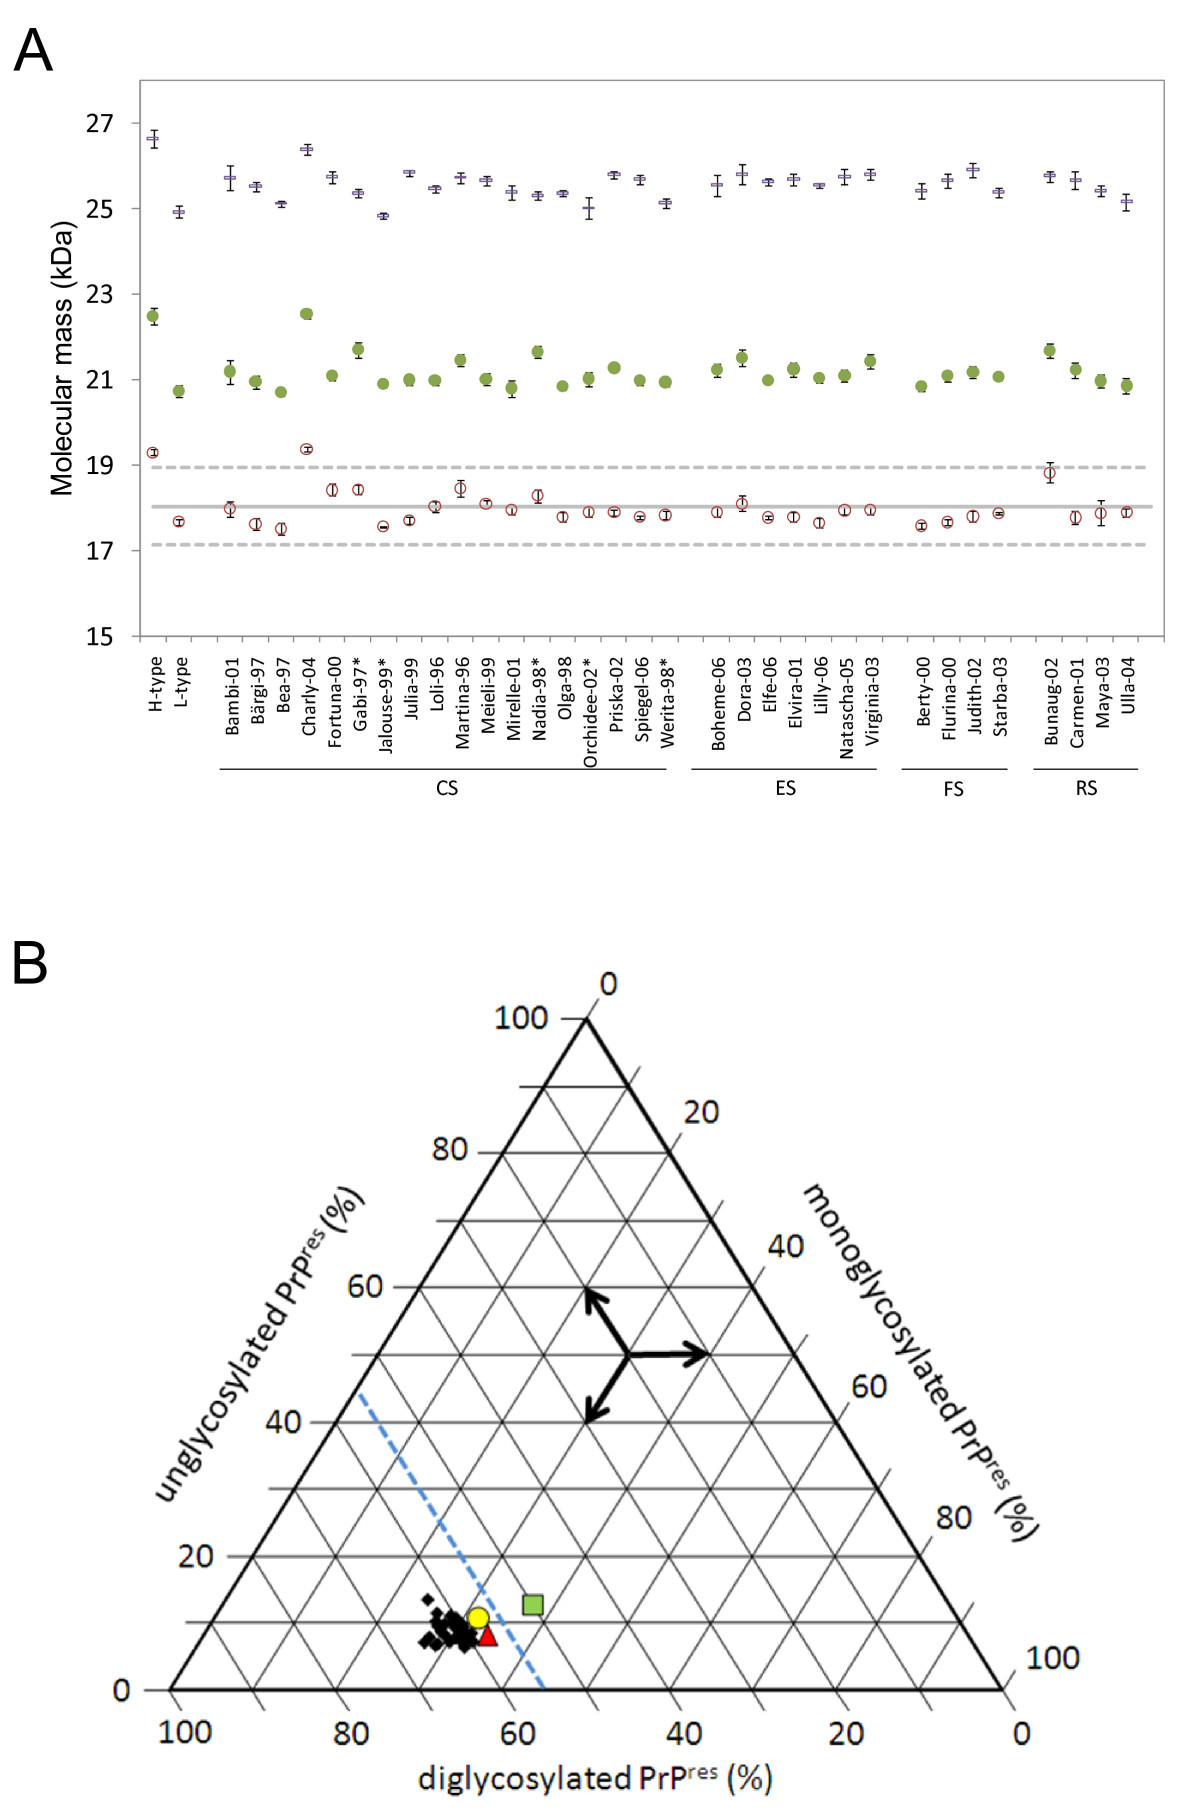 http://static-content.springer.com/image/art%3A10.1186%2F1743-422X-6-64/MediaObjects/12985_2009_Article_578_Fig2_HTML.jpg